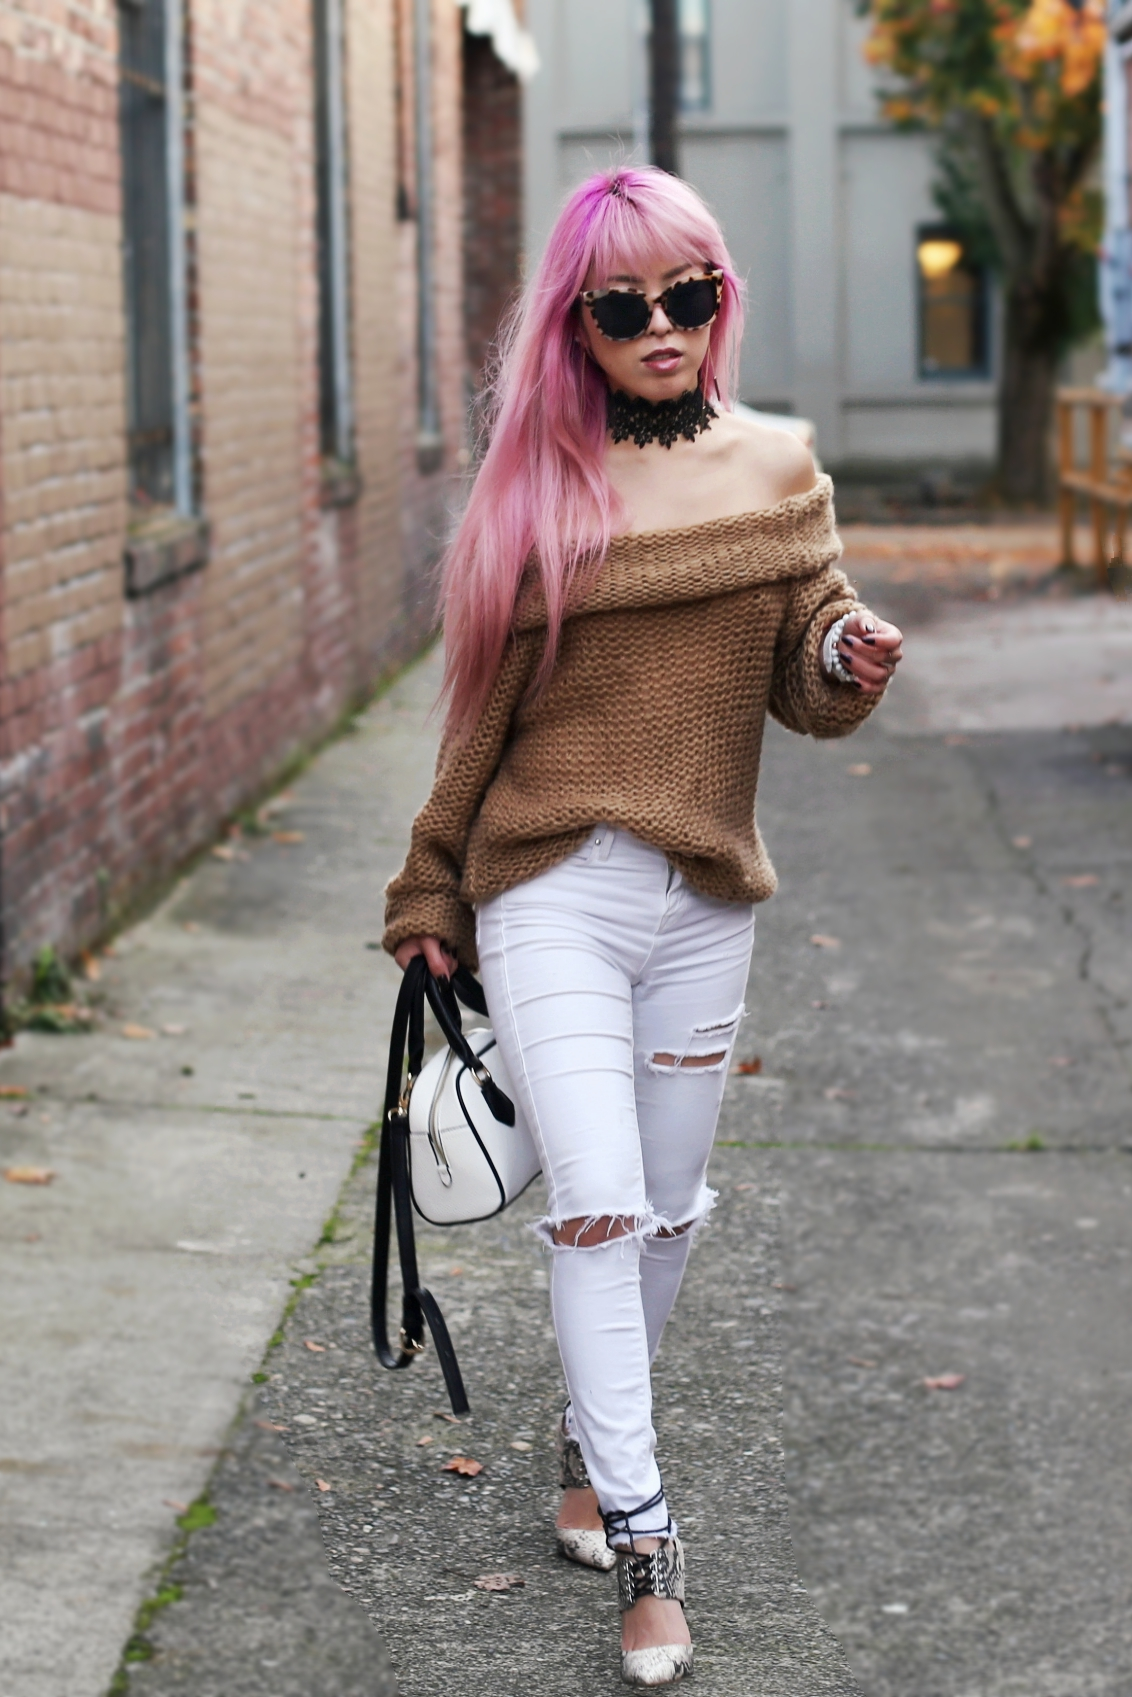 Urban Outfitters Sunglasses_Camel Off The Shoulder Sweater_TOPSHOP white jeans_ZARA Bag_ASOS Snake Skin Heels_Shop Dixi Lace Choker_Aika's Love Closet_Seattle Fashion Blogger_Japanese_Pink Hair_Colored Hair 17